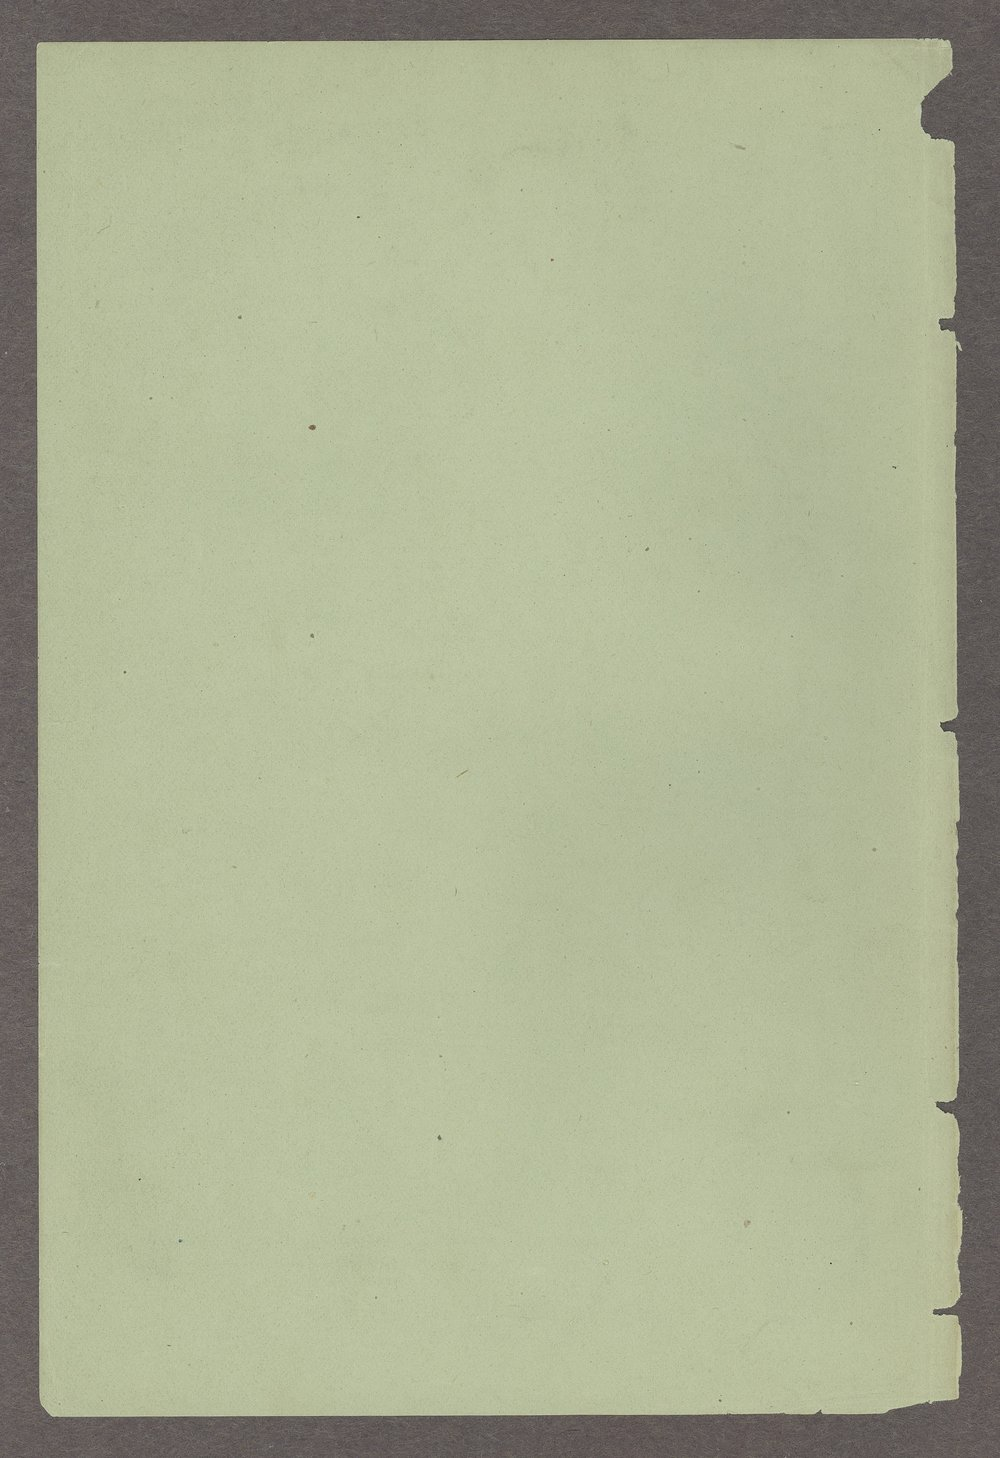 Biennial report of the State Reform School, 1888 - Back Cover